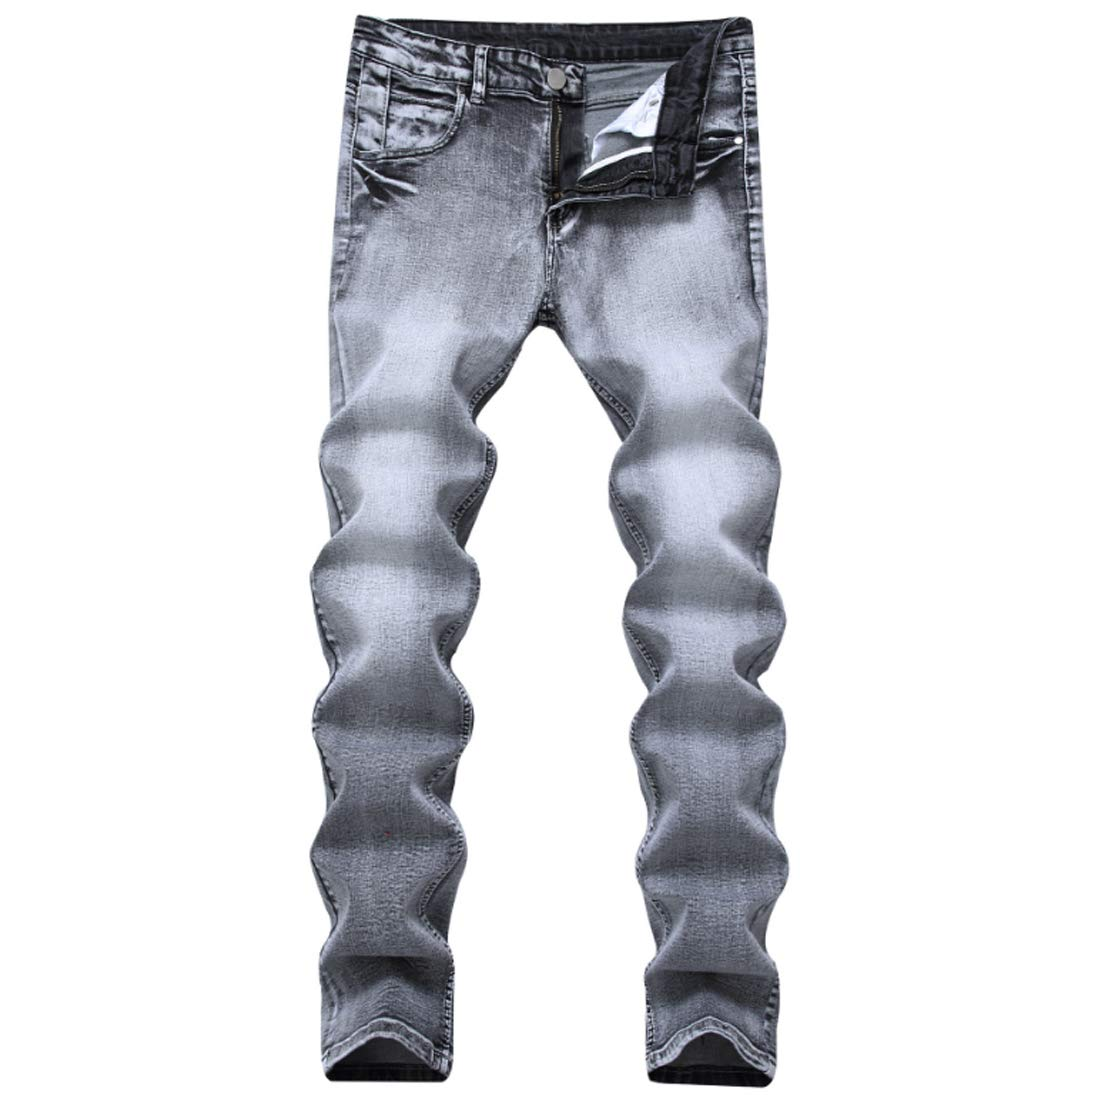 ff926b0145f75 Grey Fulision Men's Jeans Casual Denim Pants Tapered Tapered Tapered ...